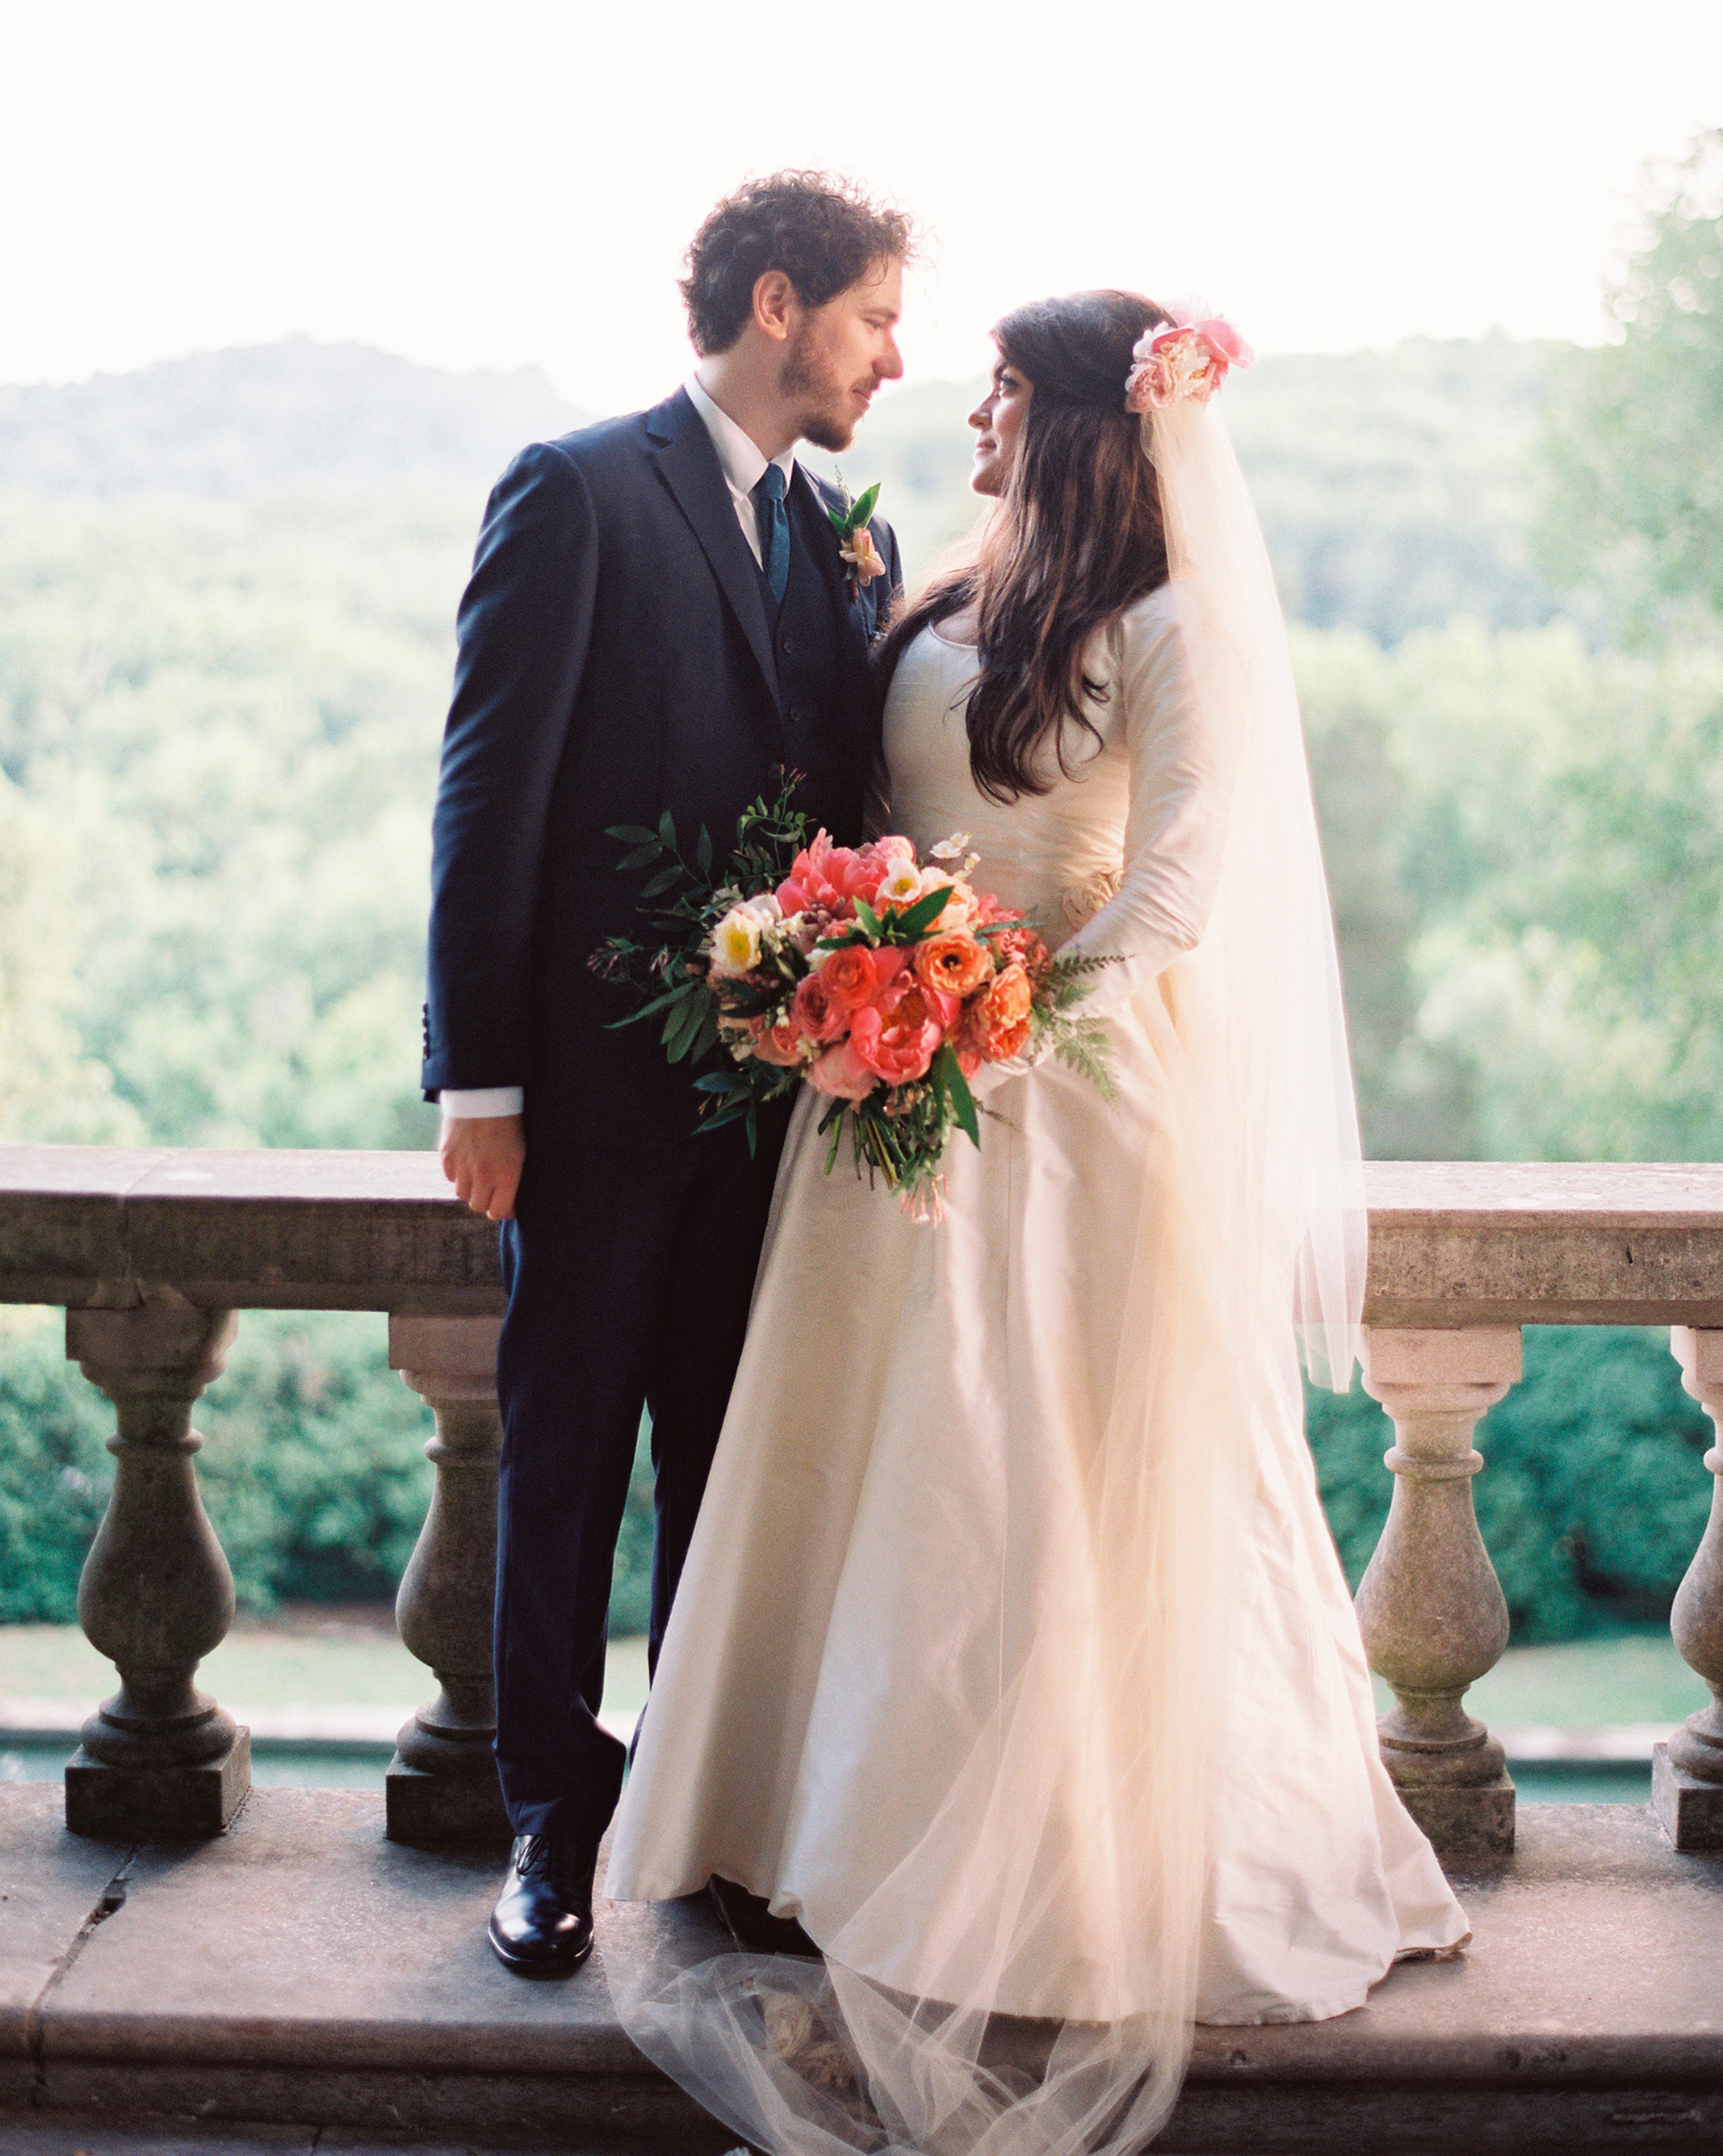 Planning to Wear an Heirloom Wedding Dress? Follow These Four Steps to Ensure It's in Perfect Condition